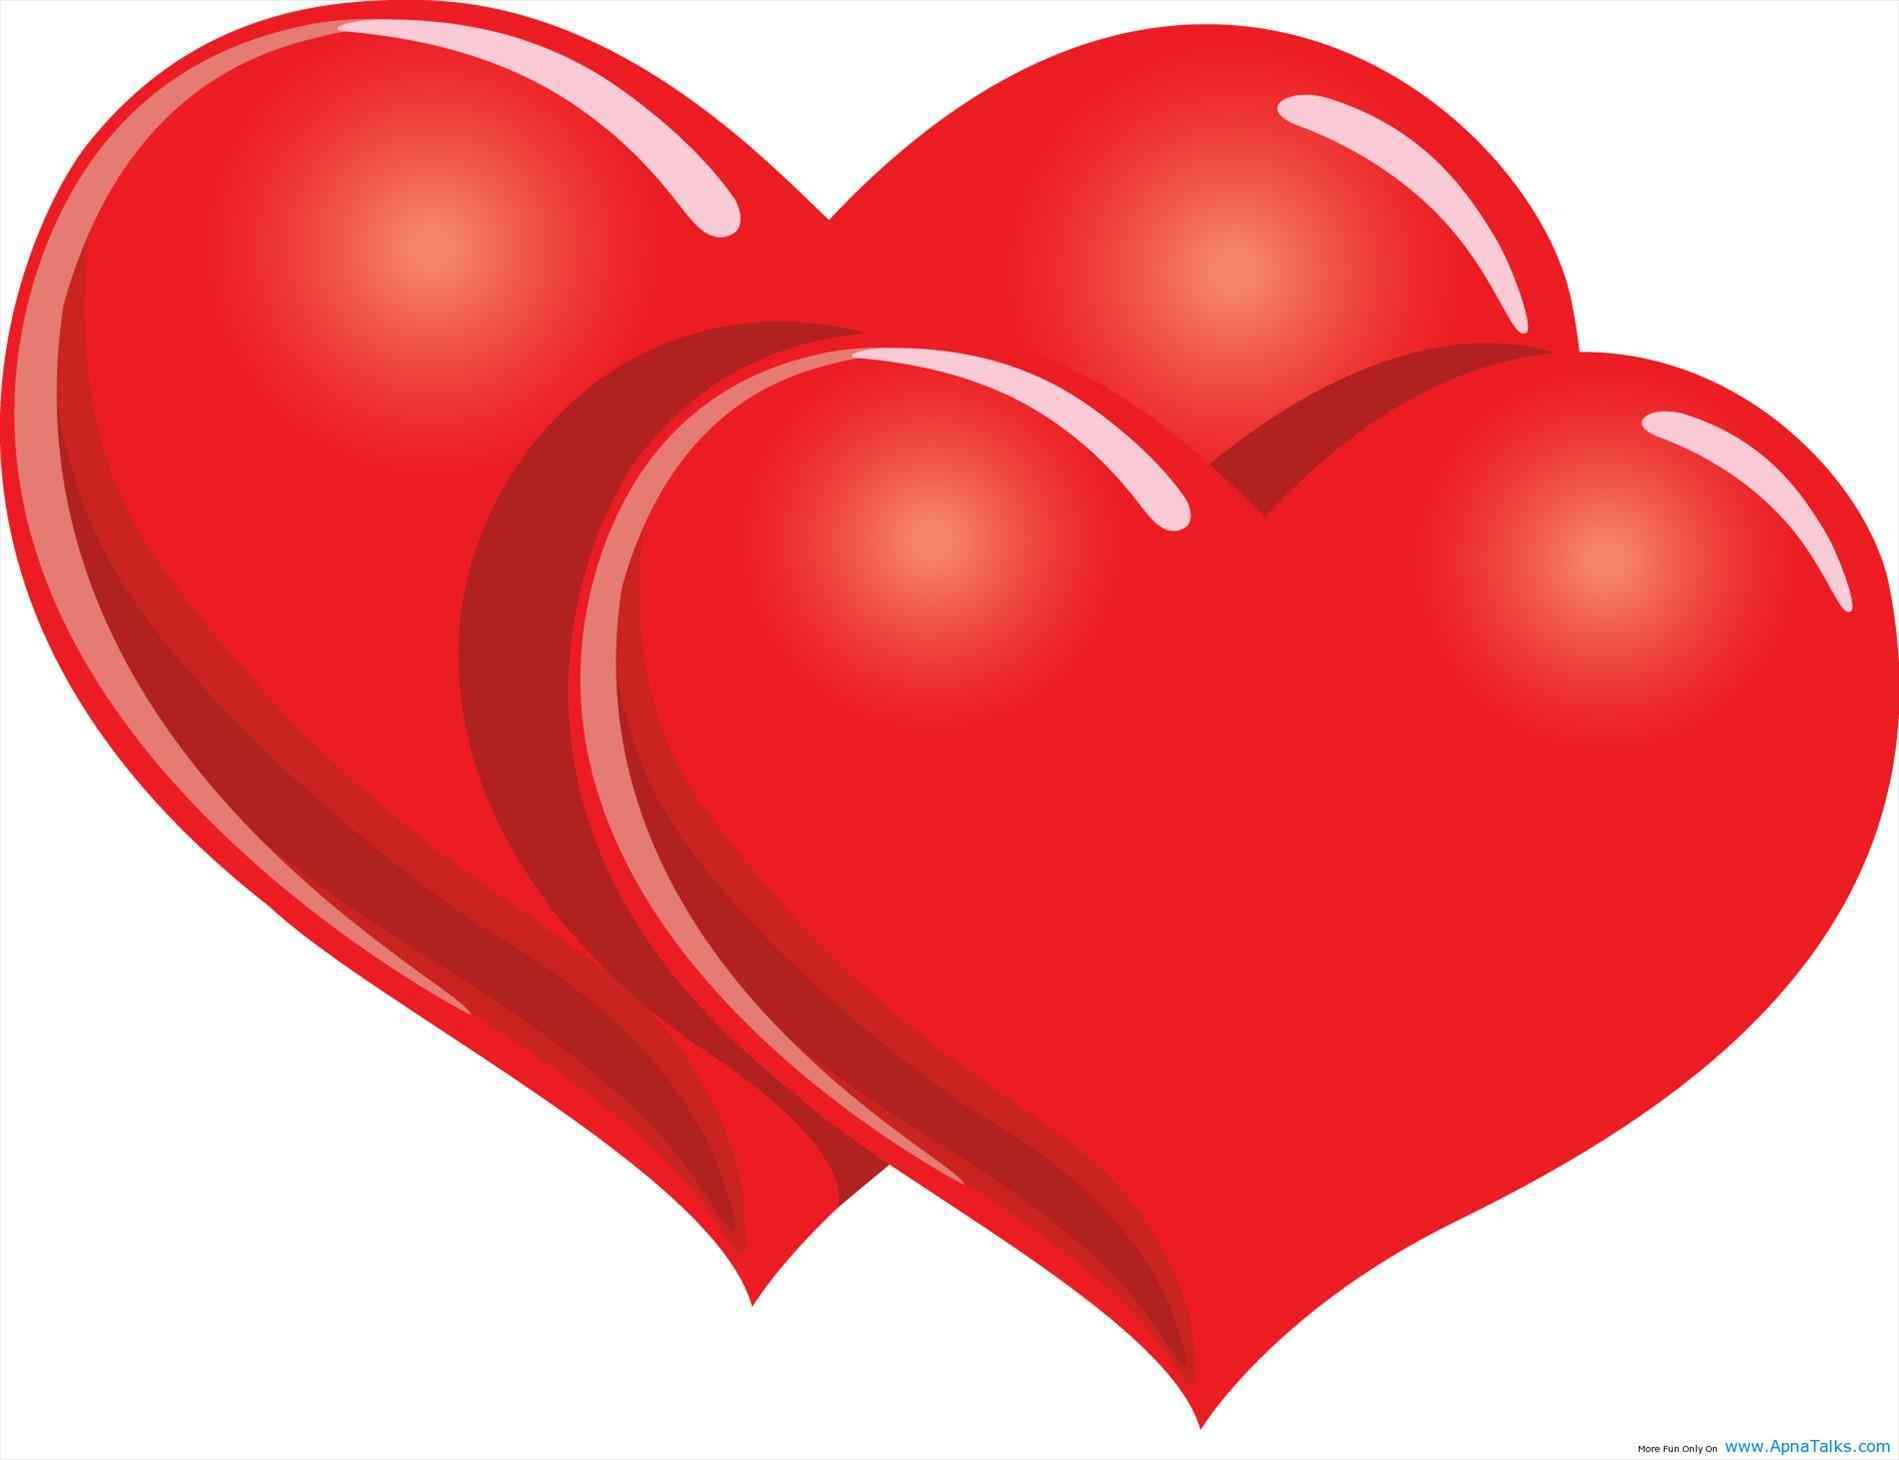 Be My Valentine Clipart at GetDrawings.com.